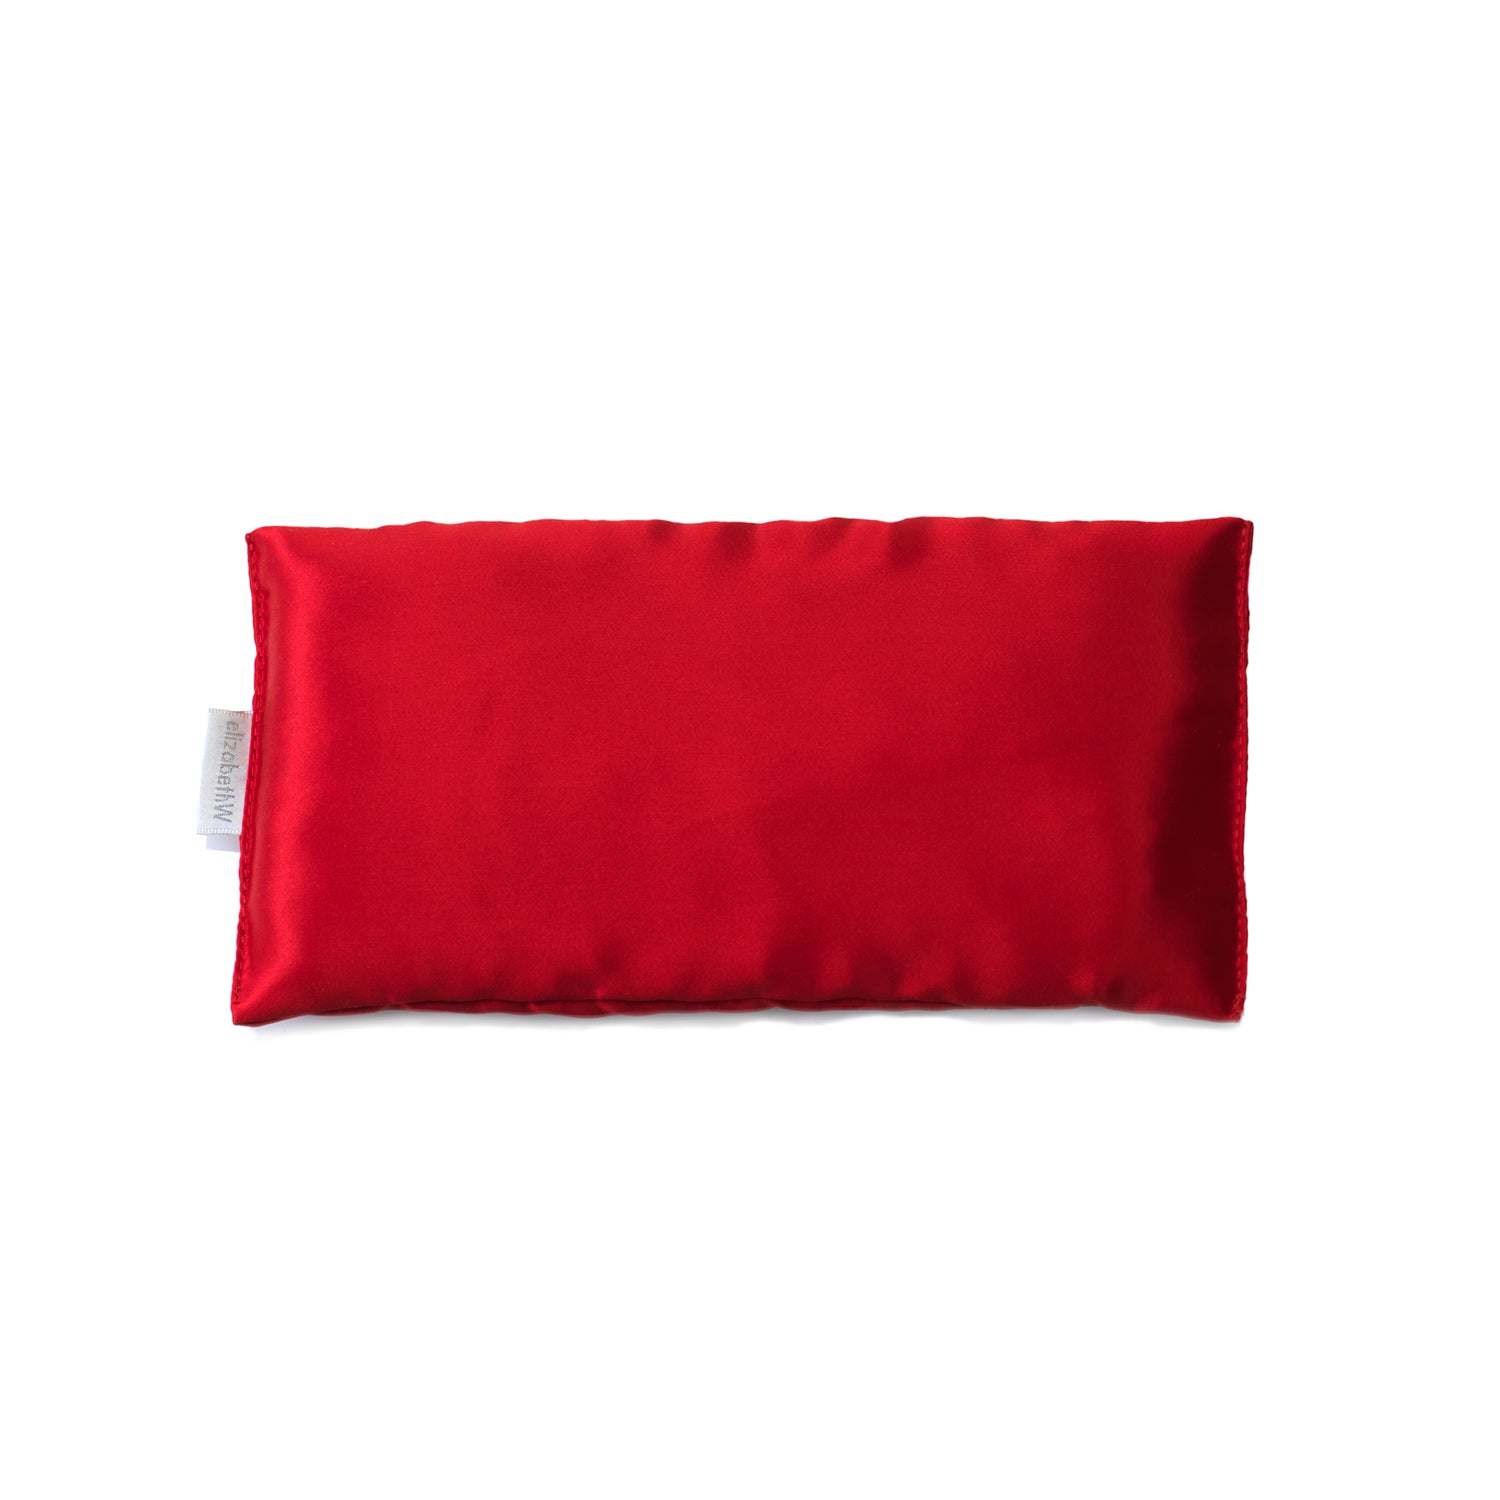 Red Eye Pillow